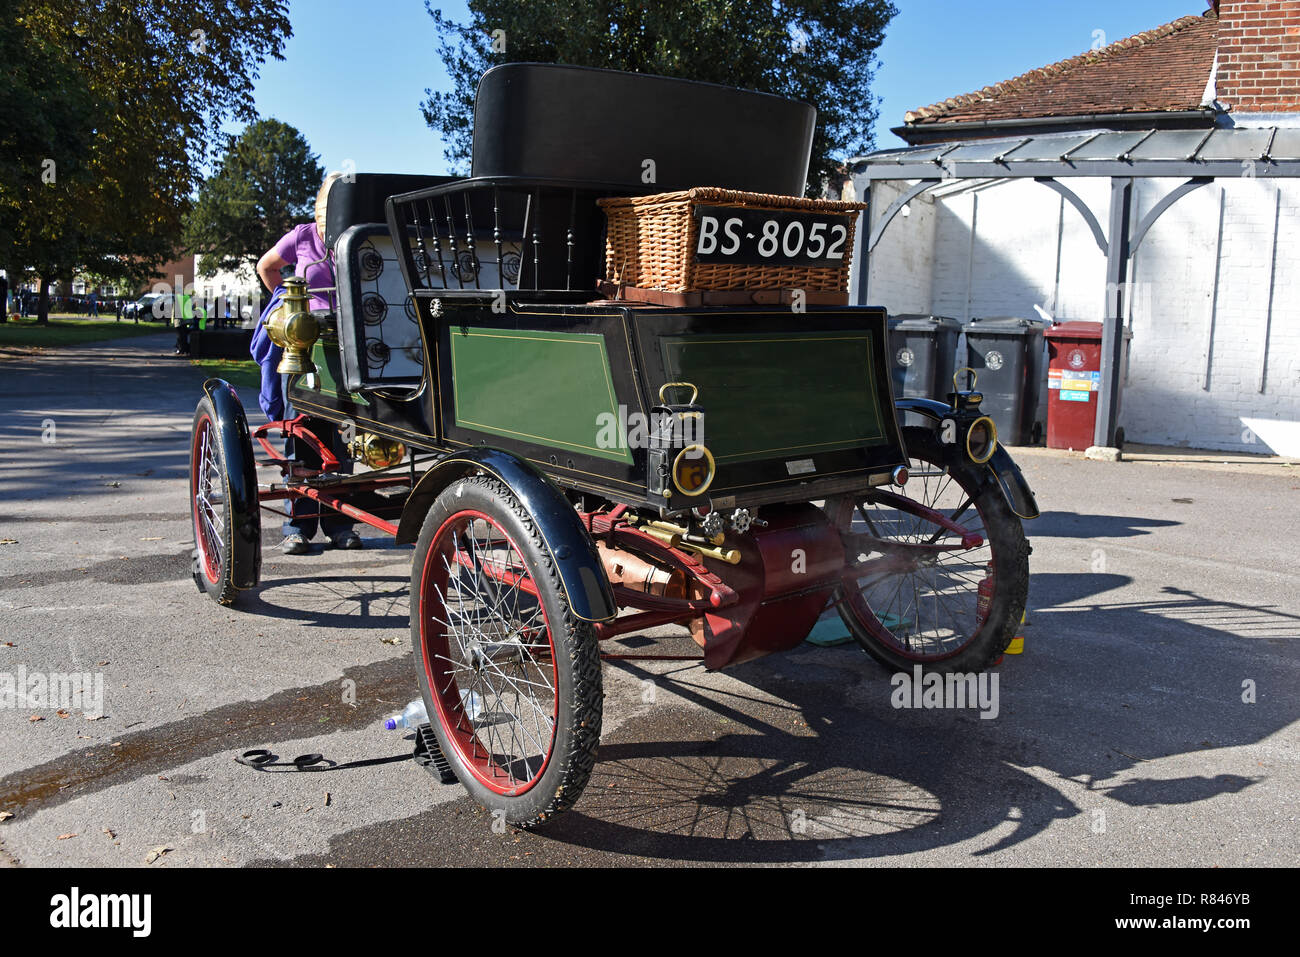 Rear vier of a 1903 Stanley Steam Car, the oldest working example in the UK, getting ready for show at the Priory Park Centenary in Chichester, Southe - Stock Image